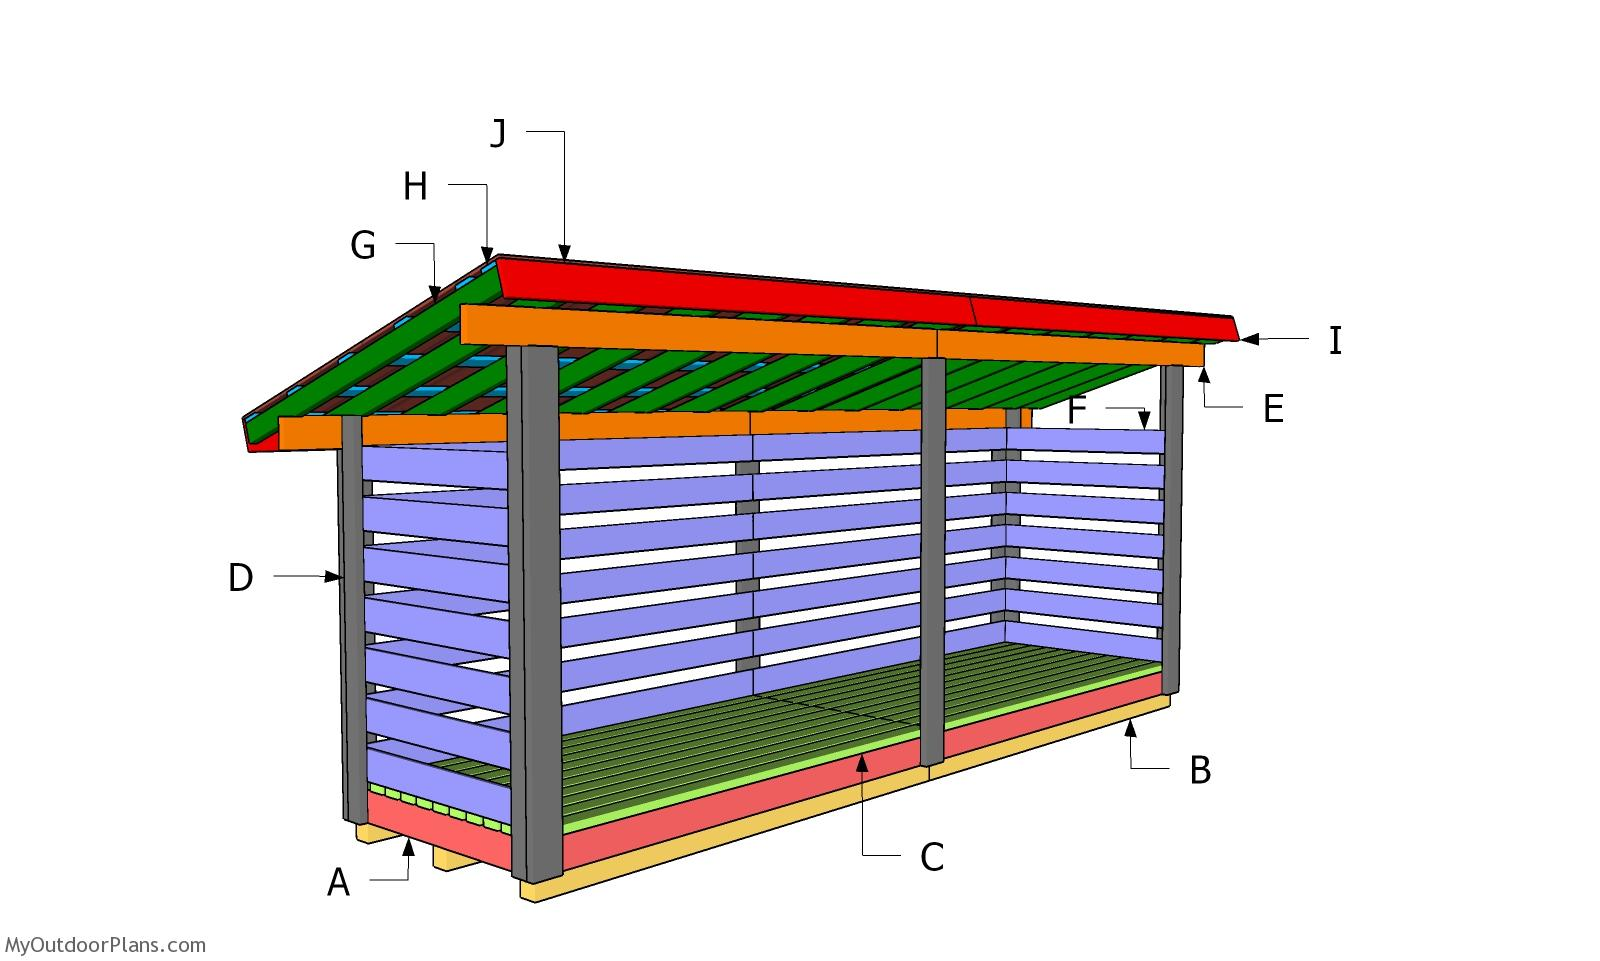 4x16 Firewood Shed - Lean to Roof Plans